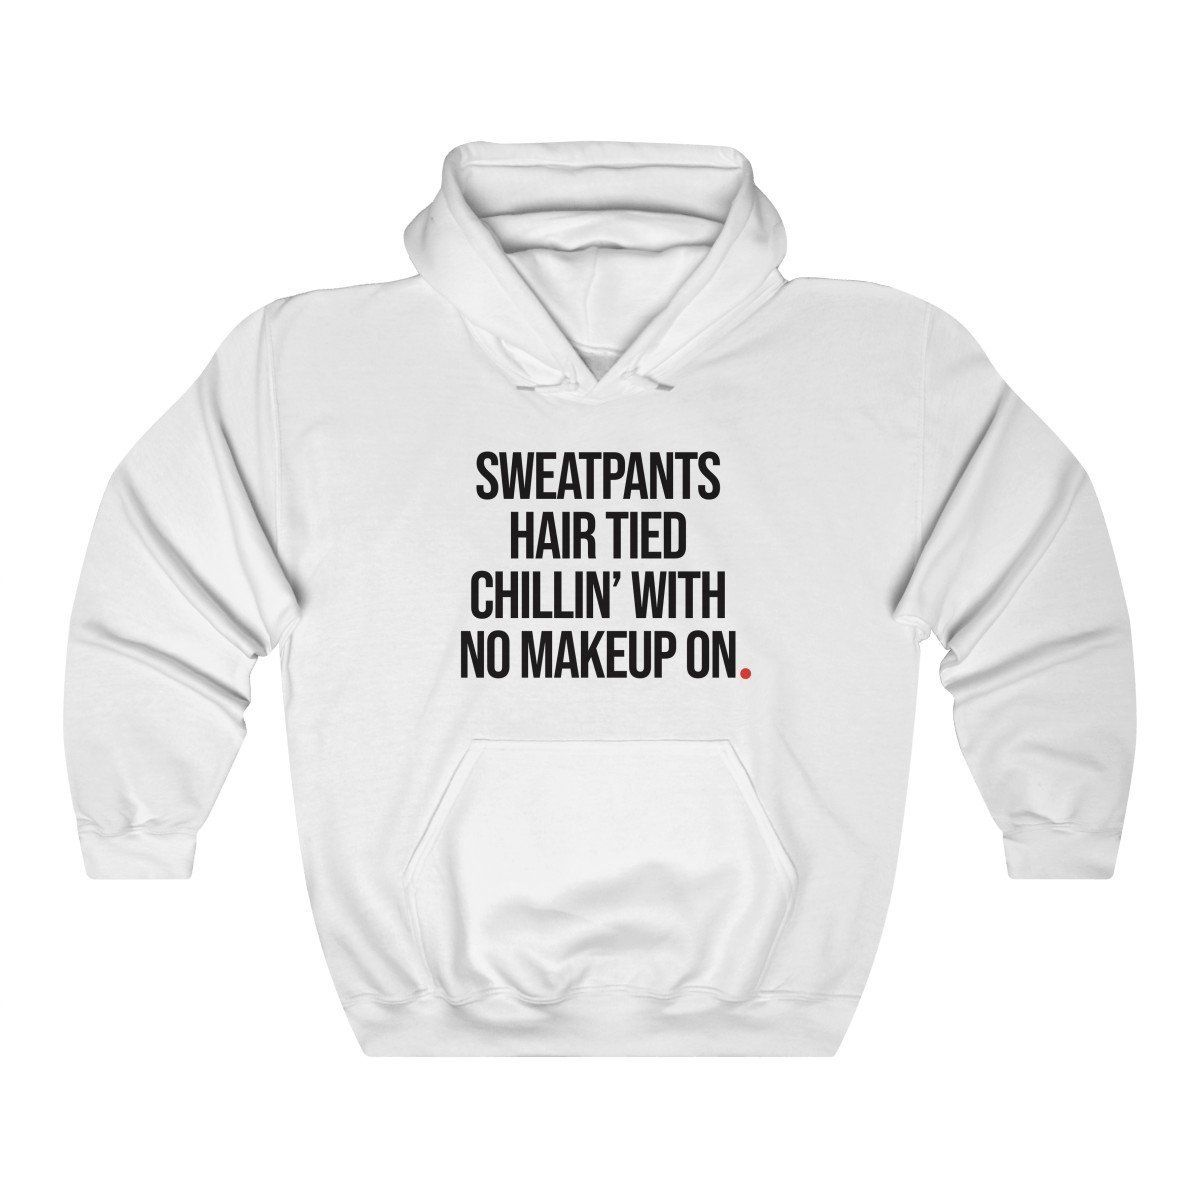 Sweatpants Hair Tied Chillin' With No Makeup On hoodie – White / M